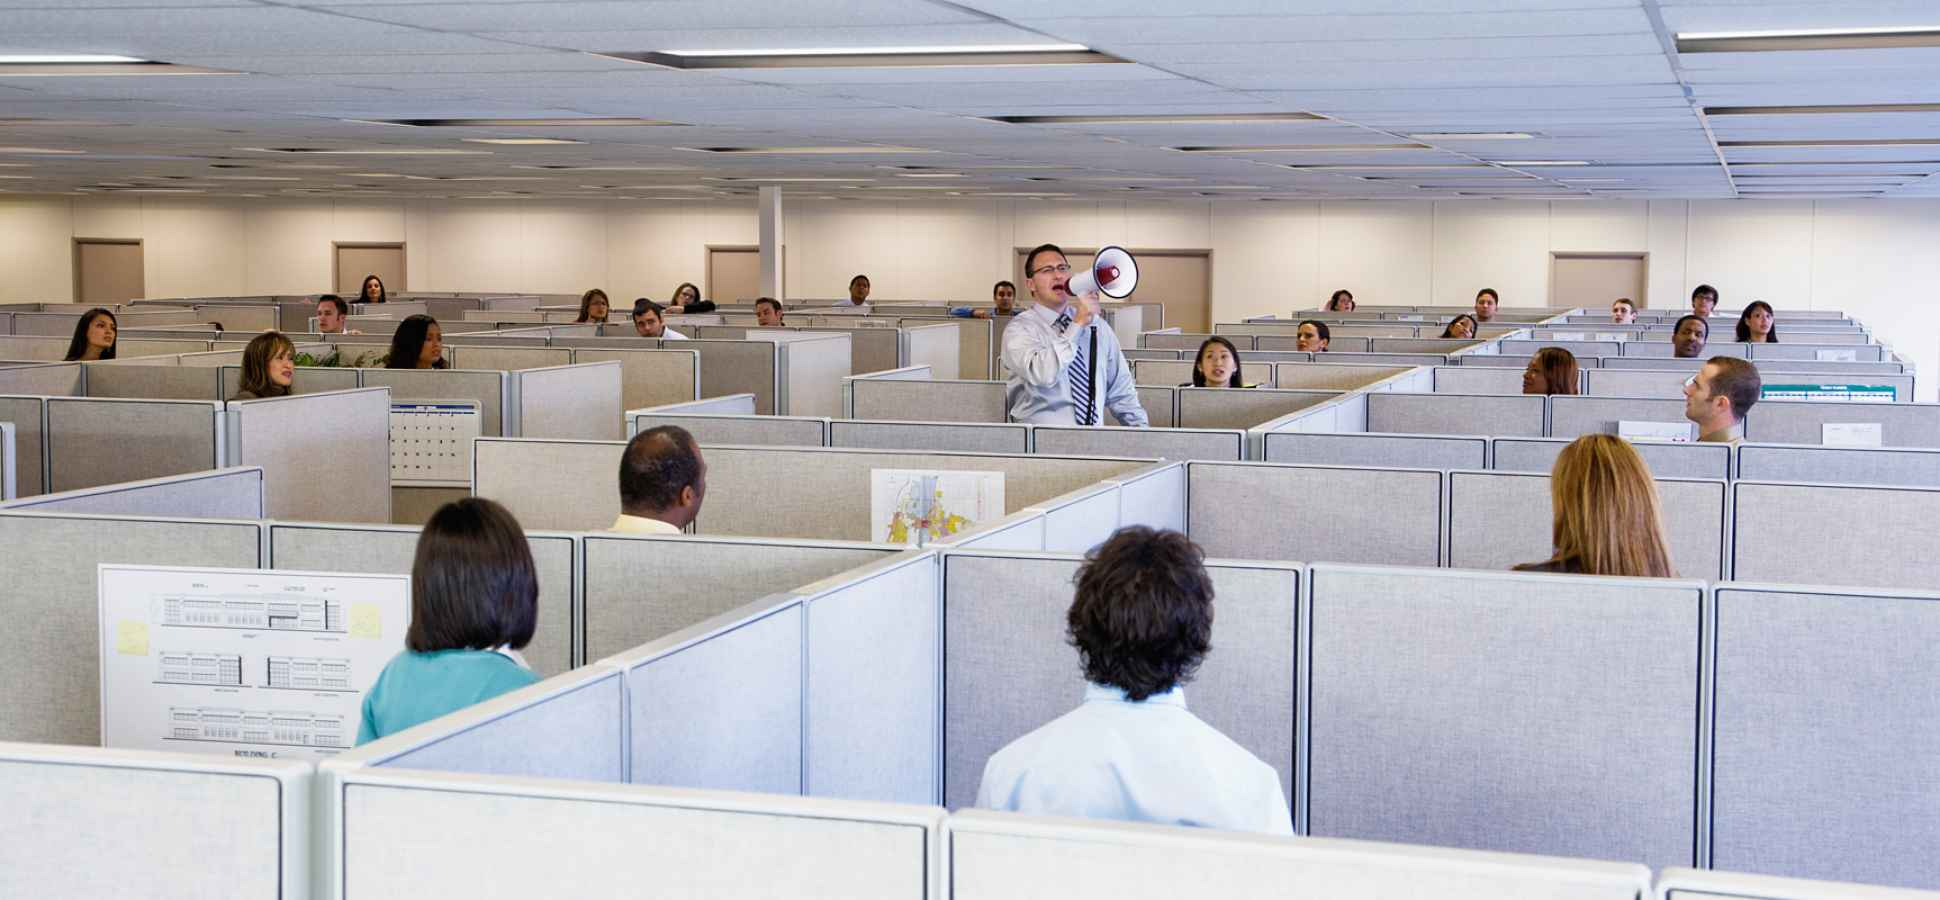 7 Common Mistakes Bosses Make